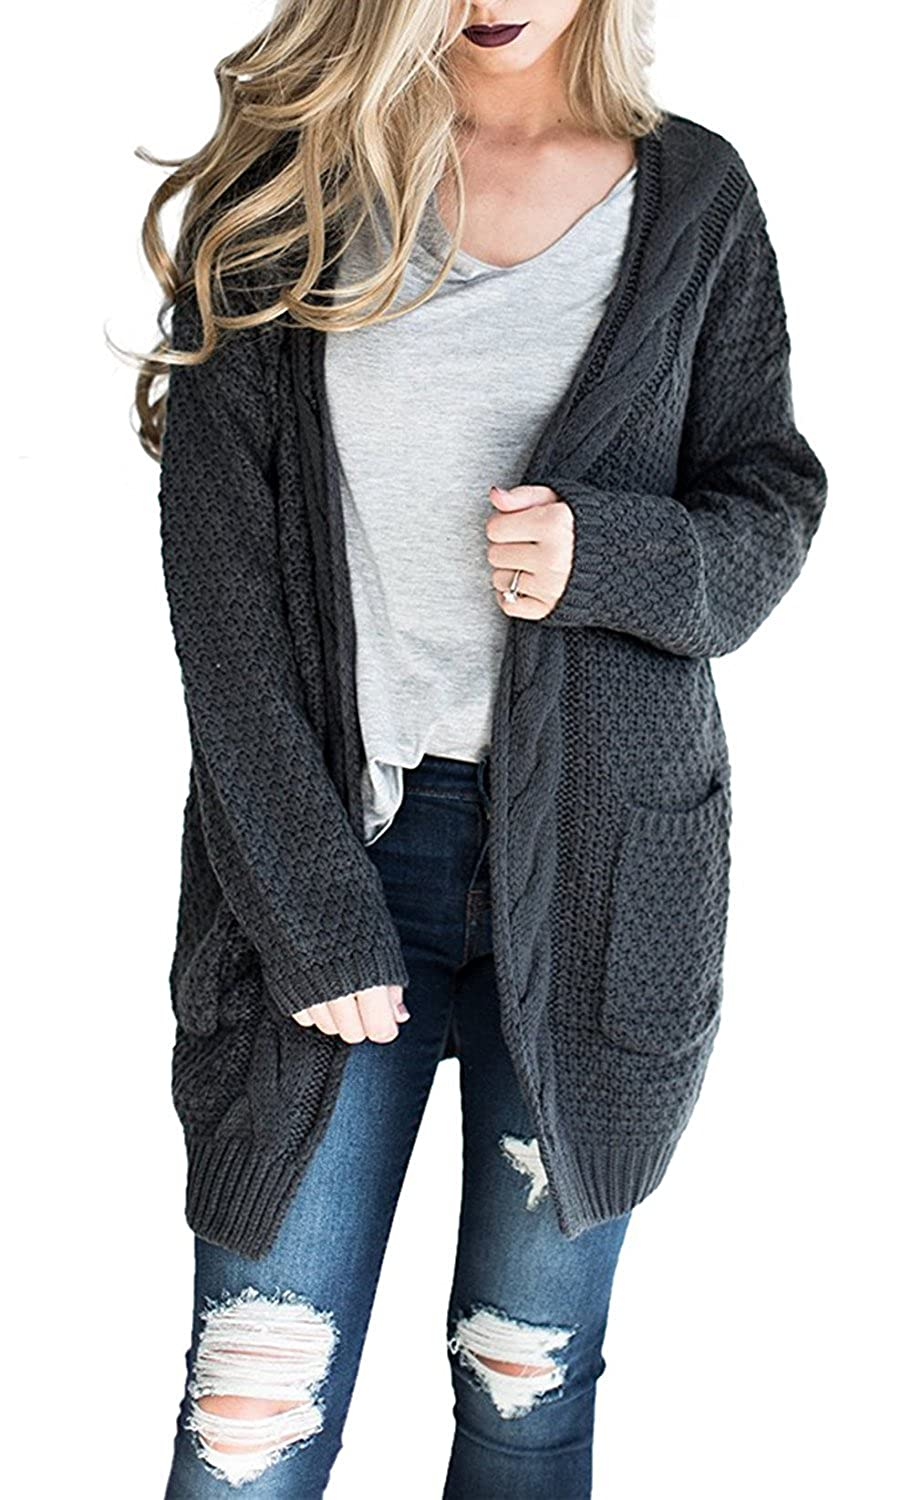 69d796b2508 Top 10 wholesale Long Cable Knit Cardigan Sweater - Chinabrands.com